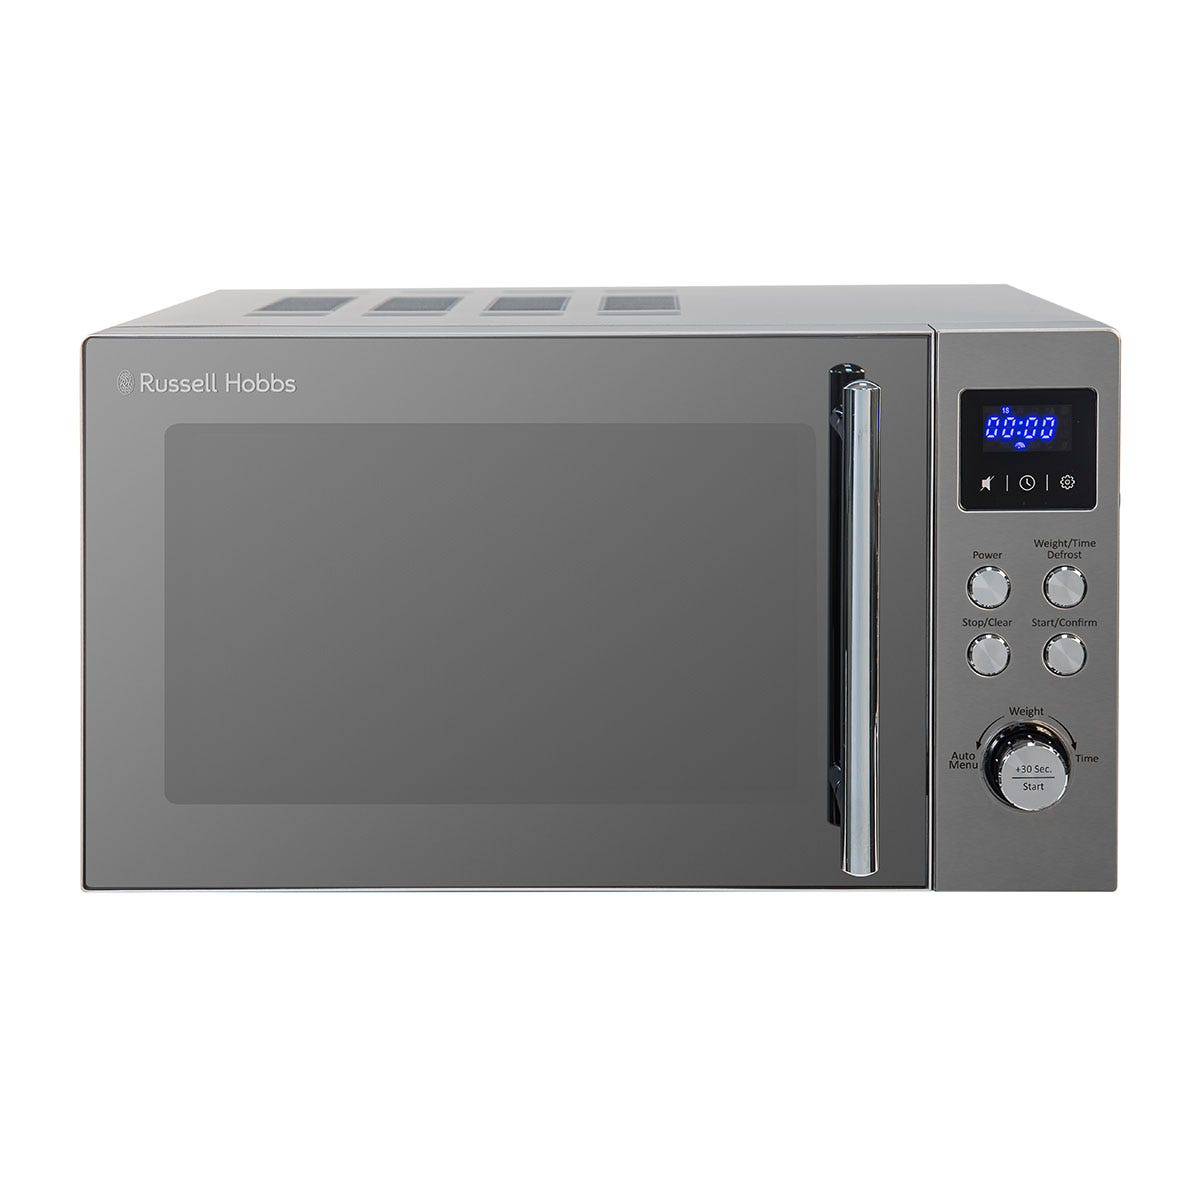 Russell Hobbs Buckingham 800W 17L Digital Microwave - Stainless Steel